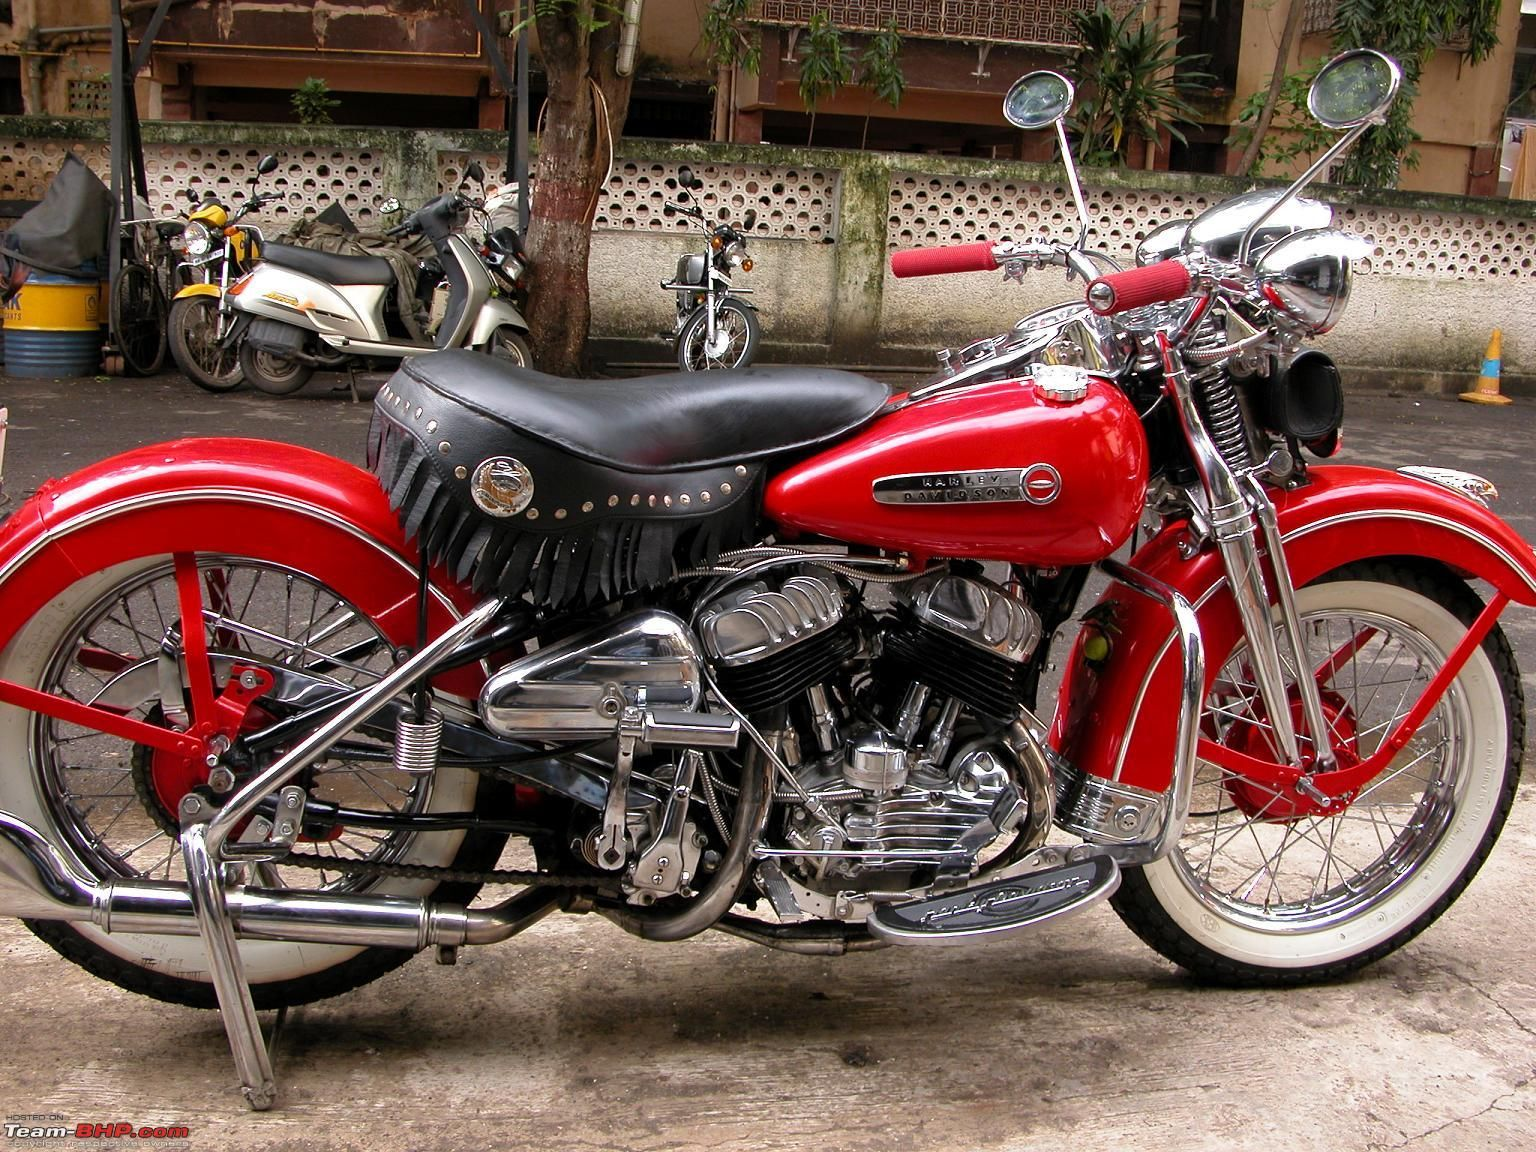 Classic Motorcycles In India Classic Motorcycles Motorcycle